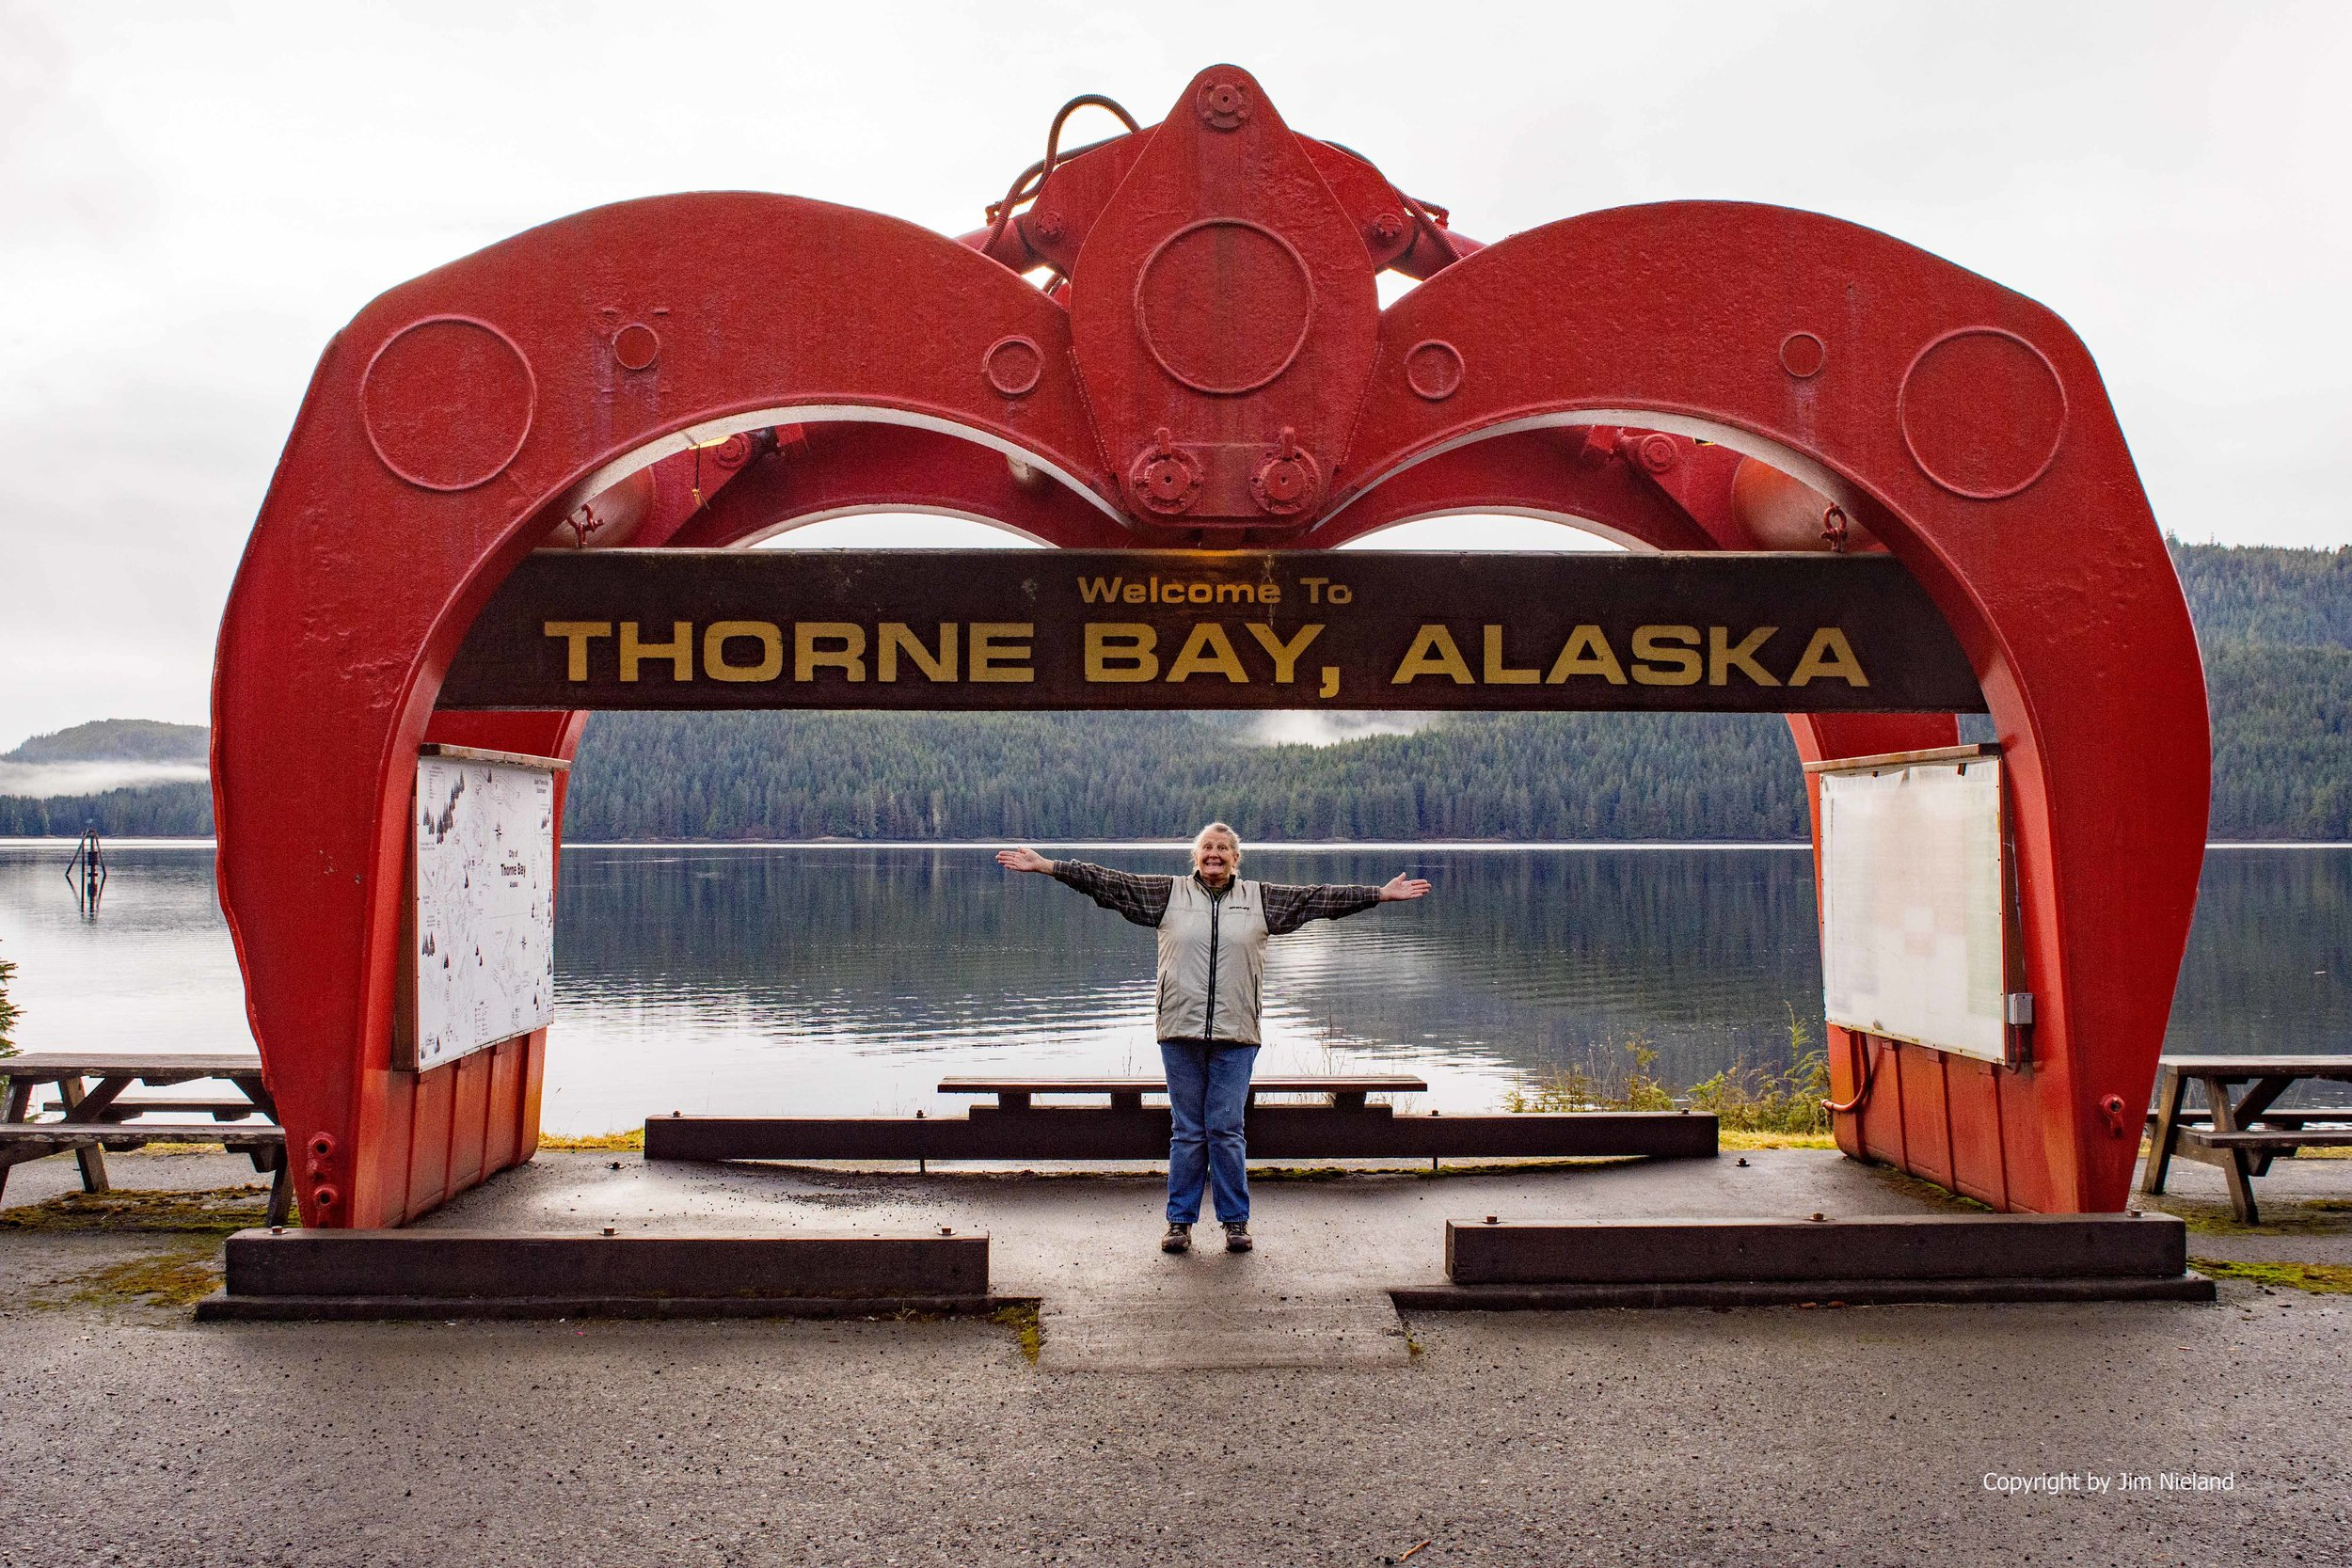 Travel to Thorne Bay logging grapple claw Prince of Wales Island Southeast Alaska